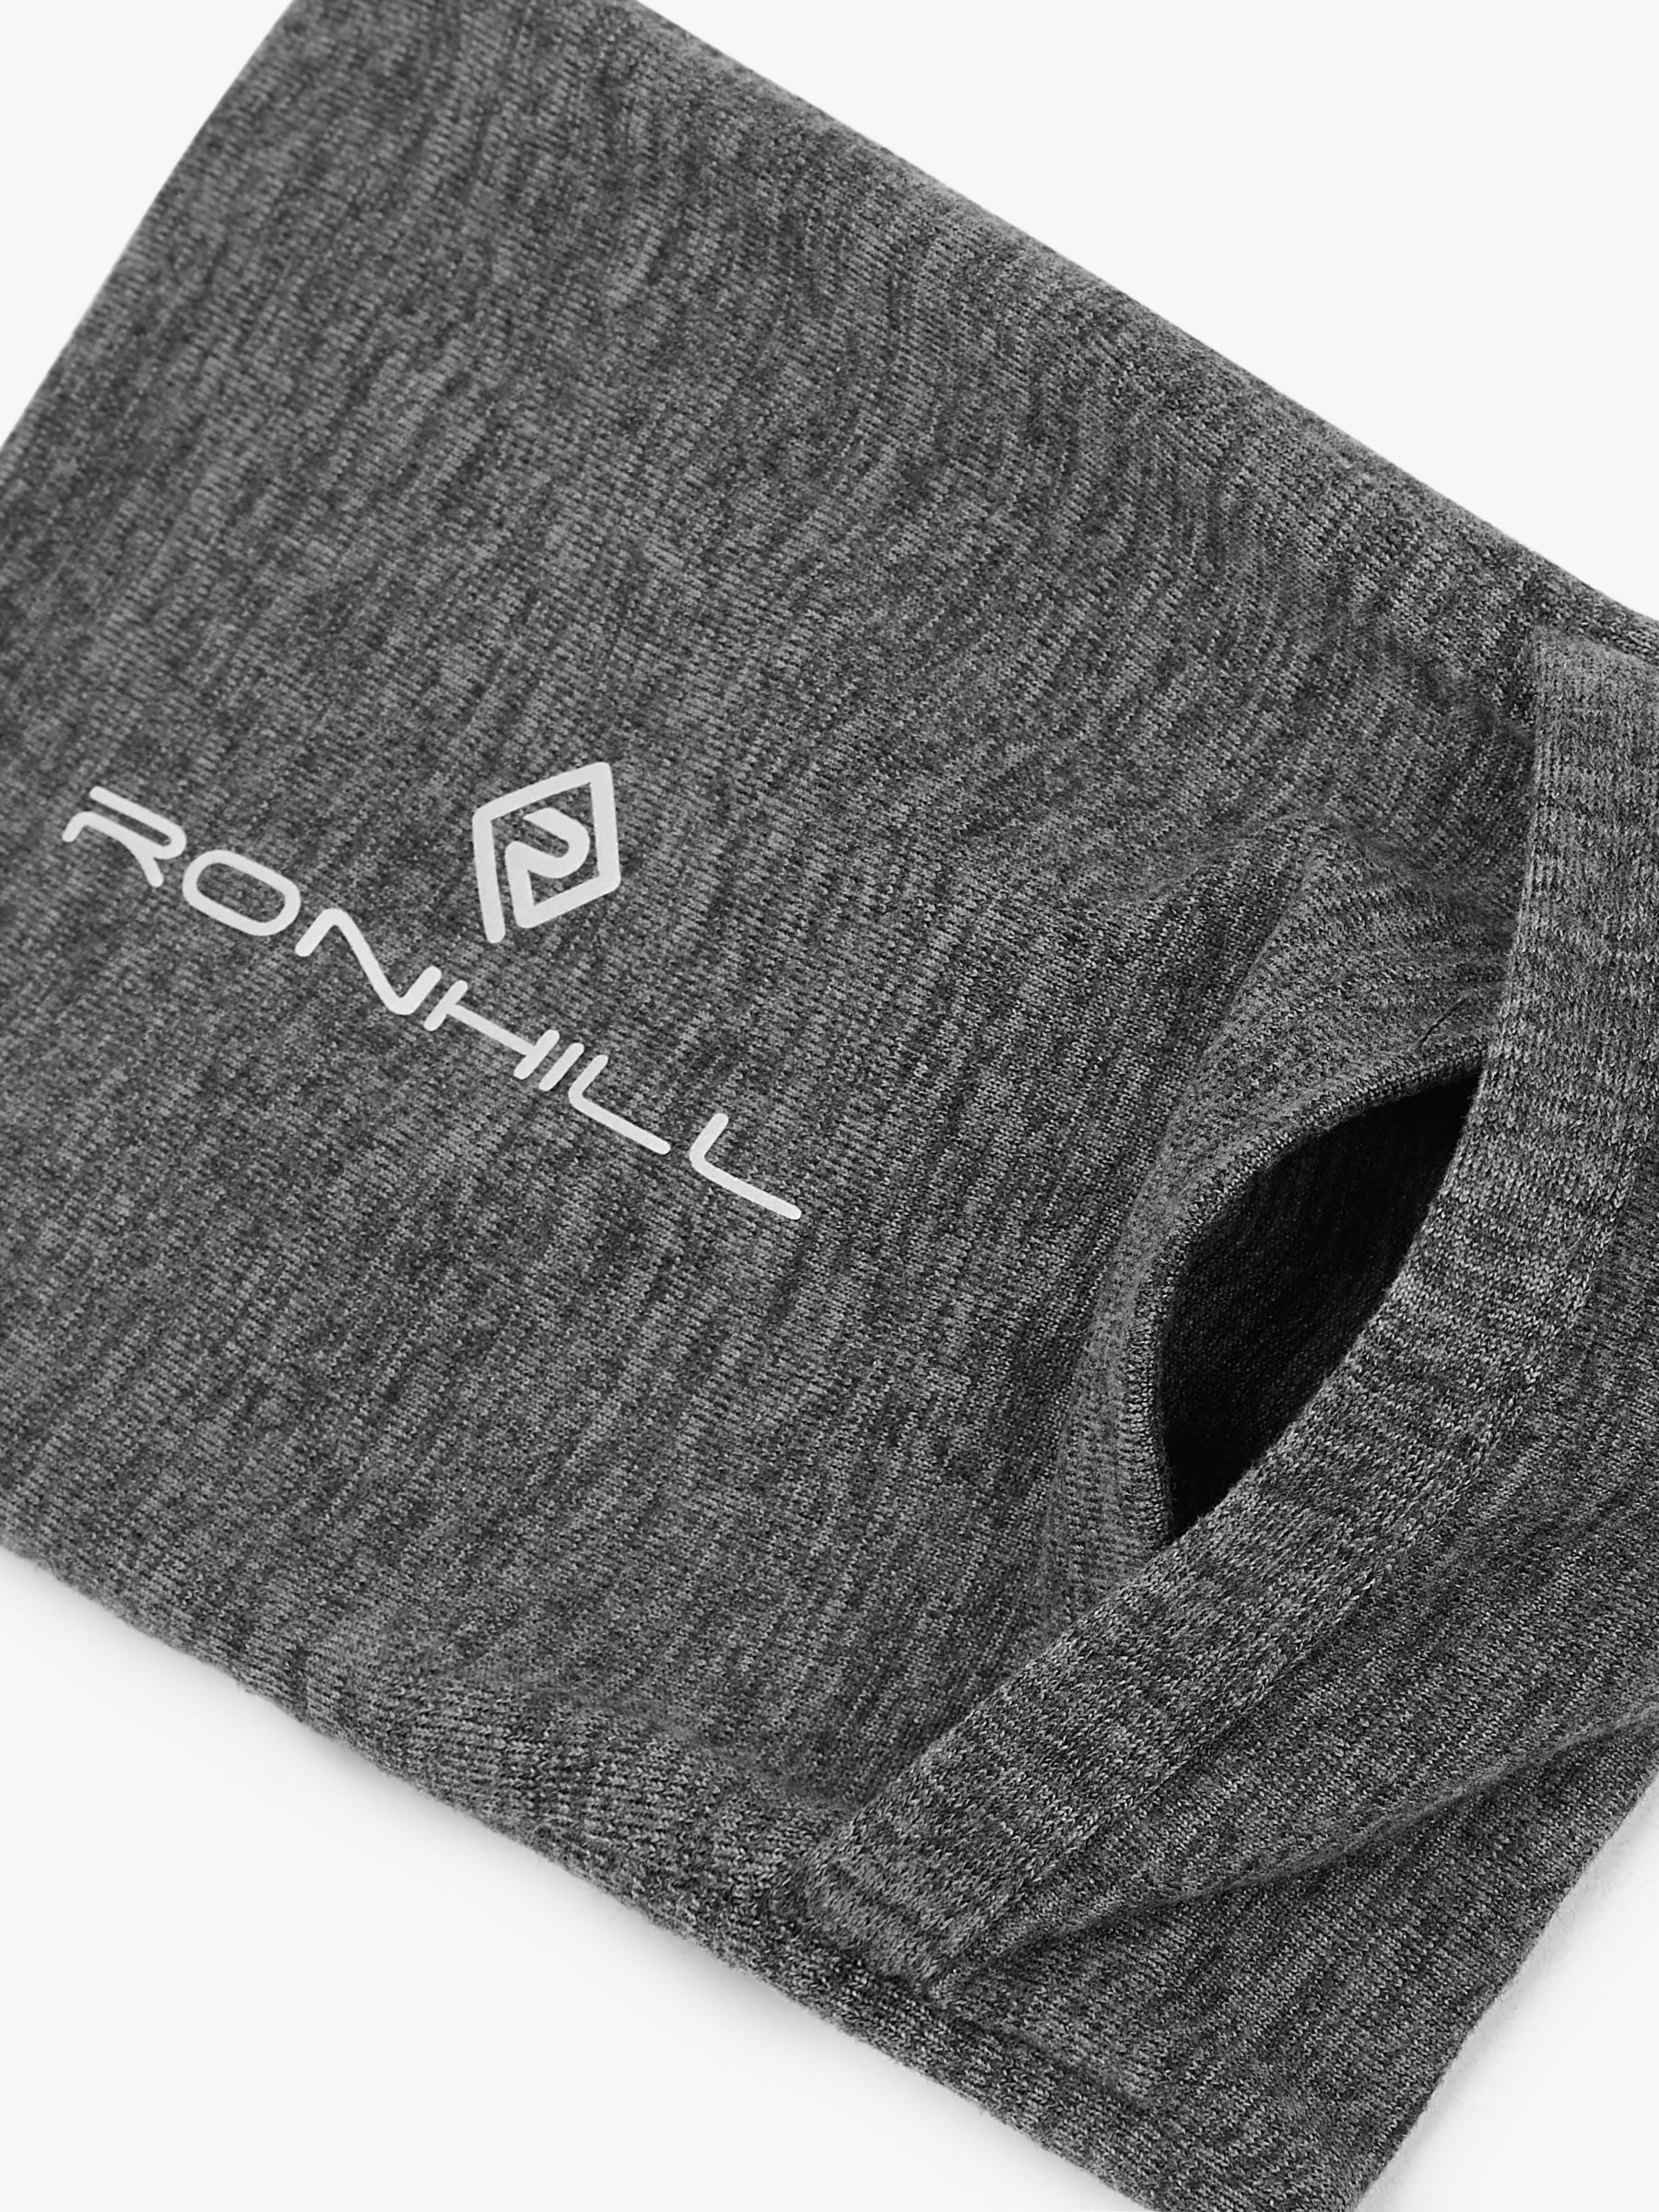 New Ronhill Stretch Arm Pocket Black or Grey Marl in 2 sizes.